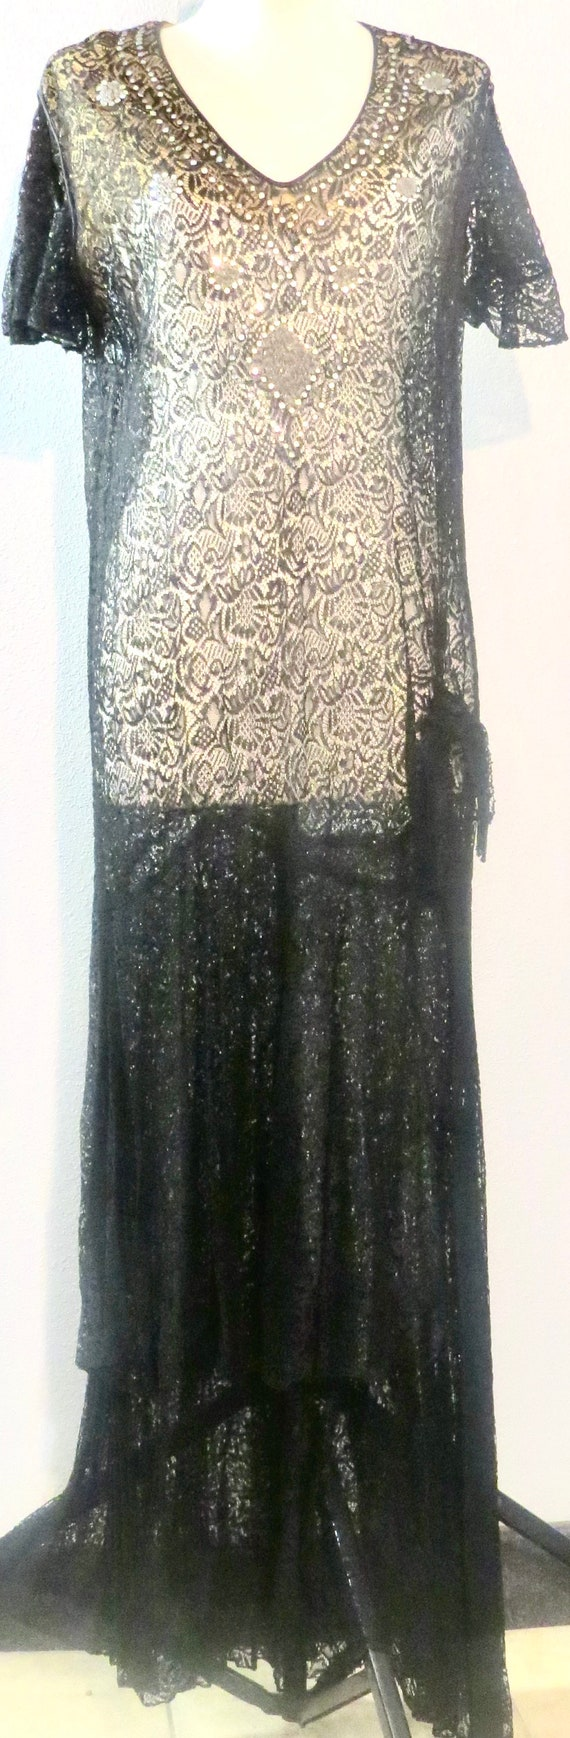 Exceptional 1920's Embellished Lace Dress